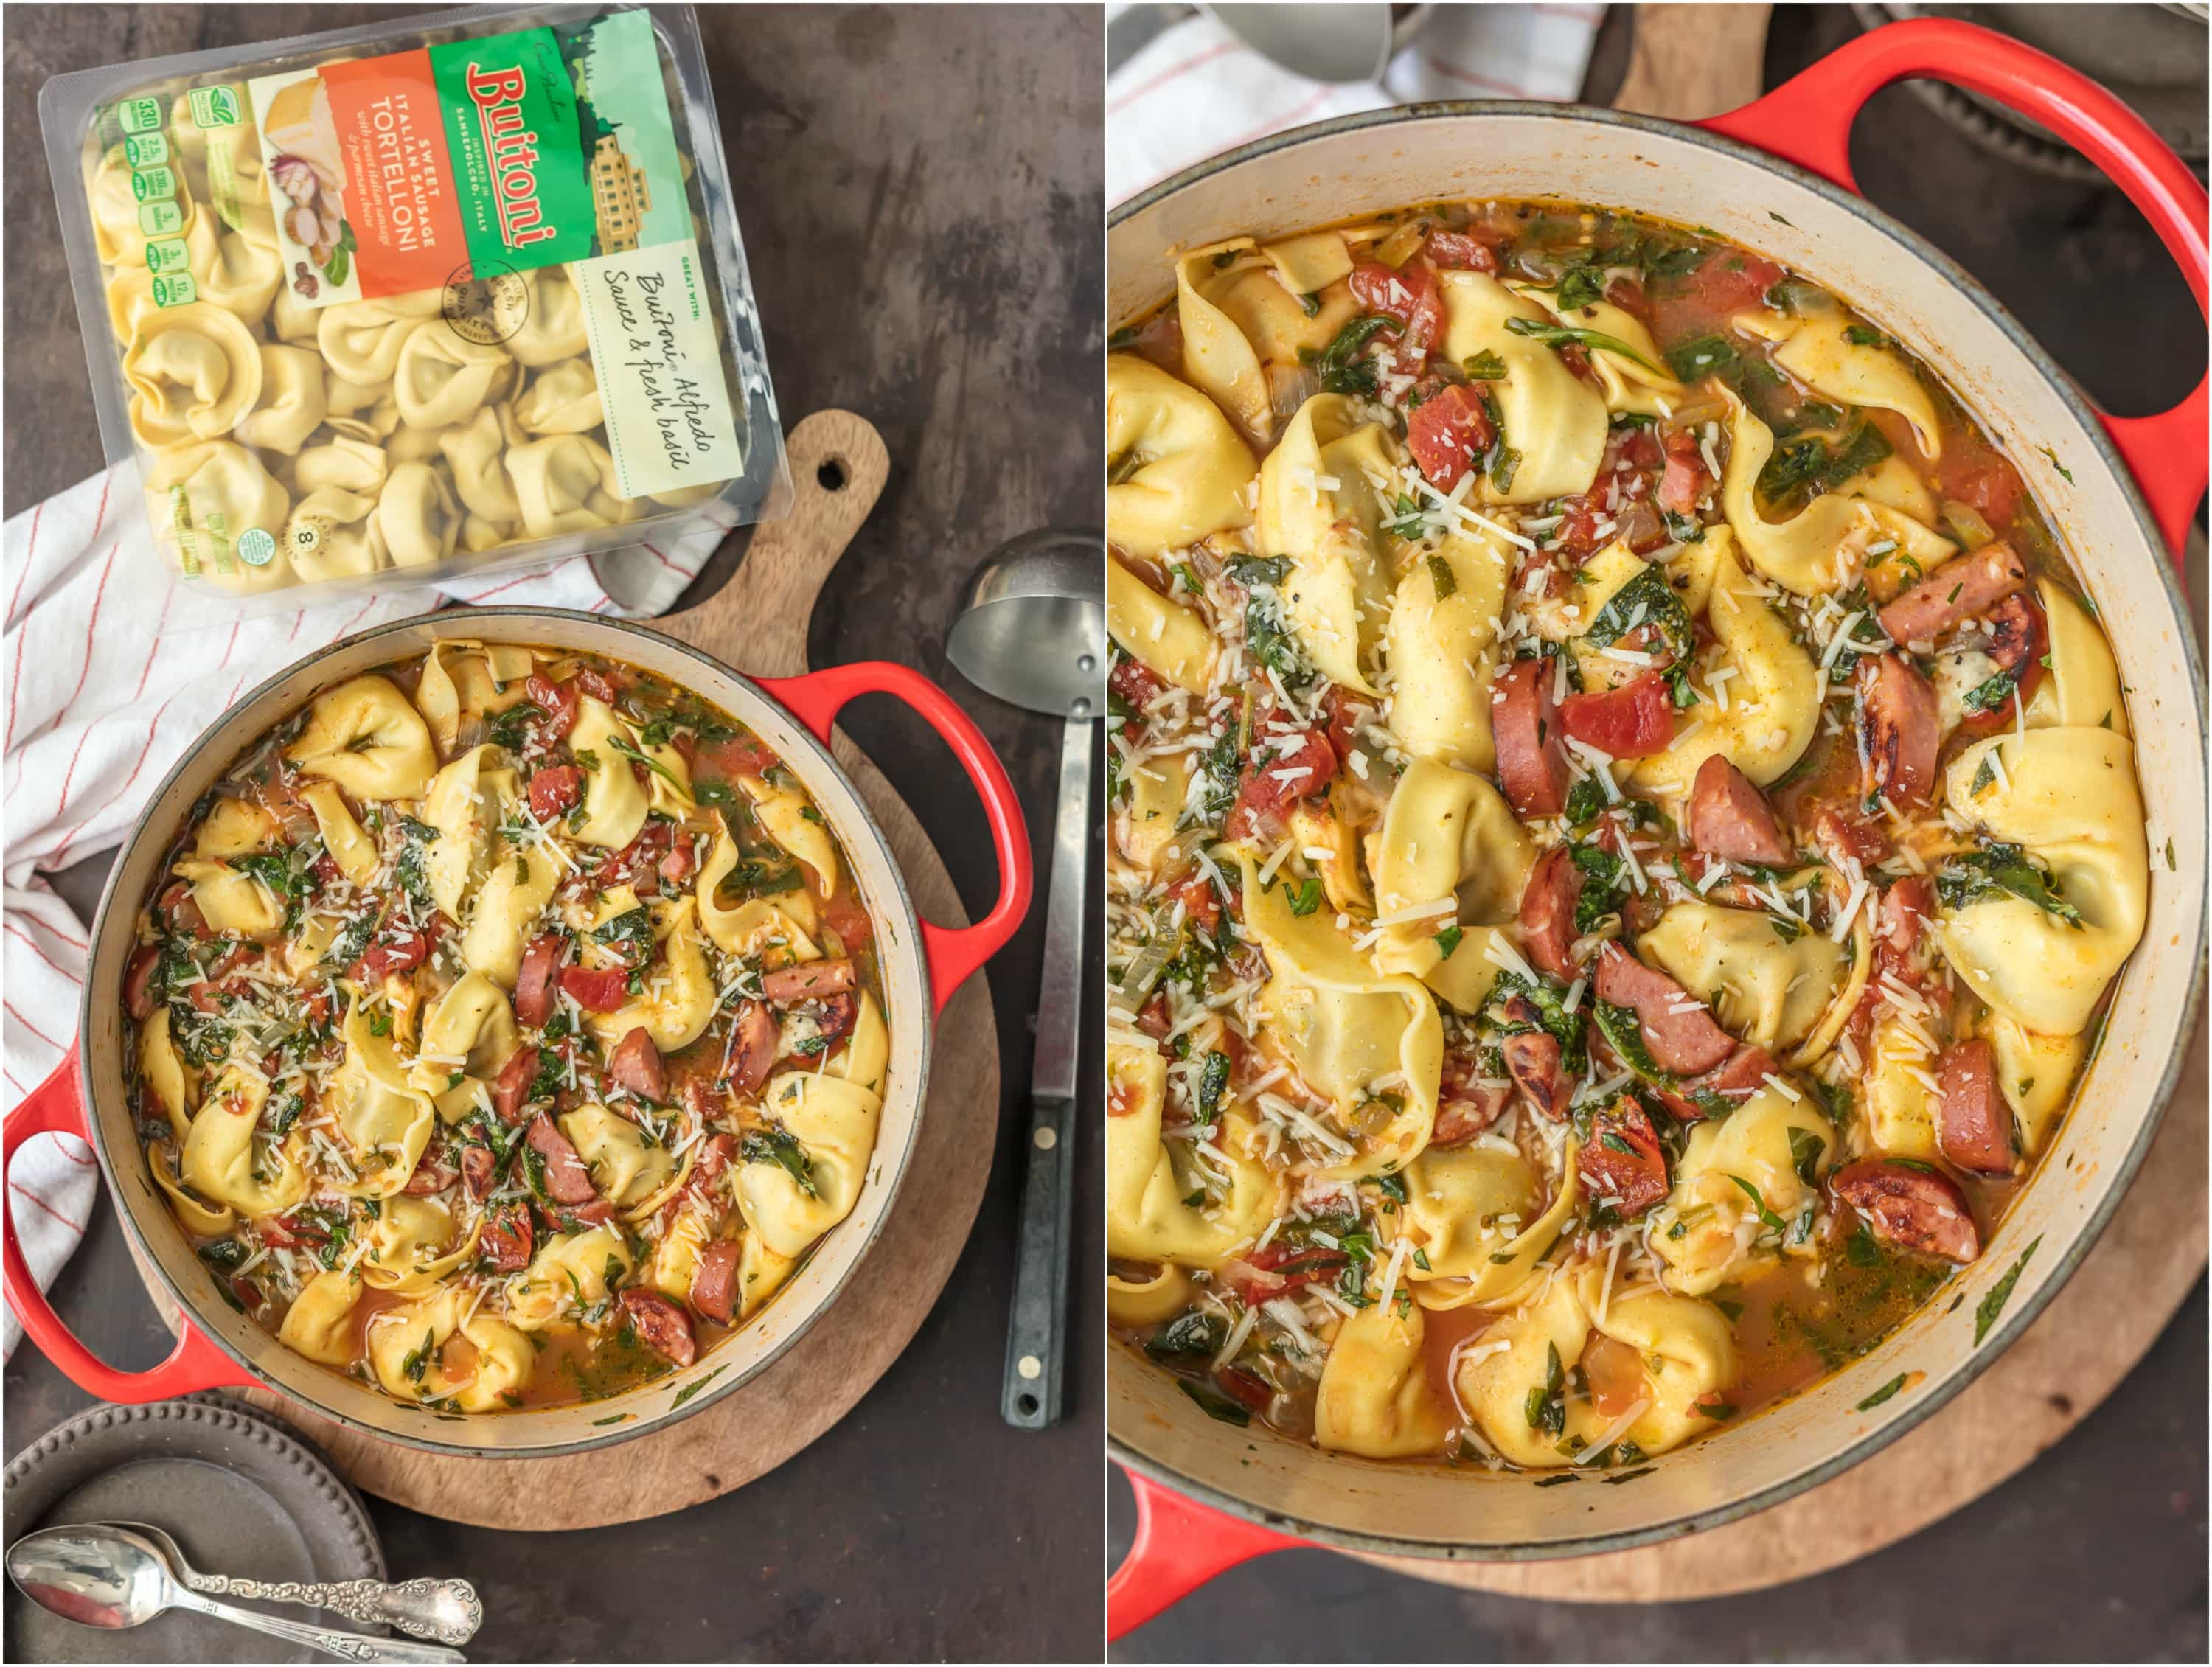 This SWEET ITALIAN SAUSAGE TORTELLINI SOUP is such an easy and delicious soup to throw together on busy days. Loaded with flavor while being kind to your waistline. I love it!